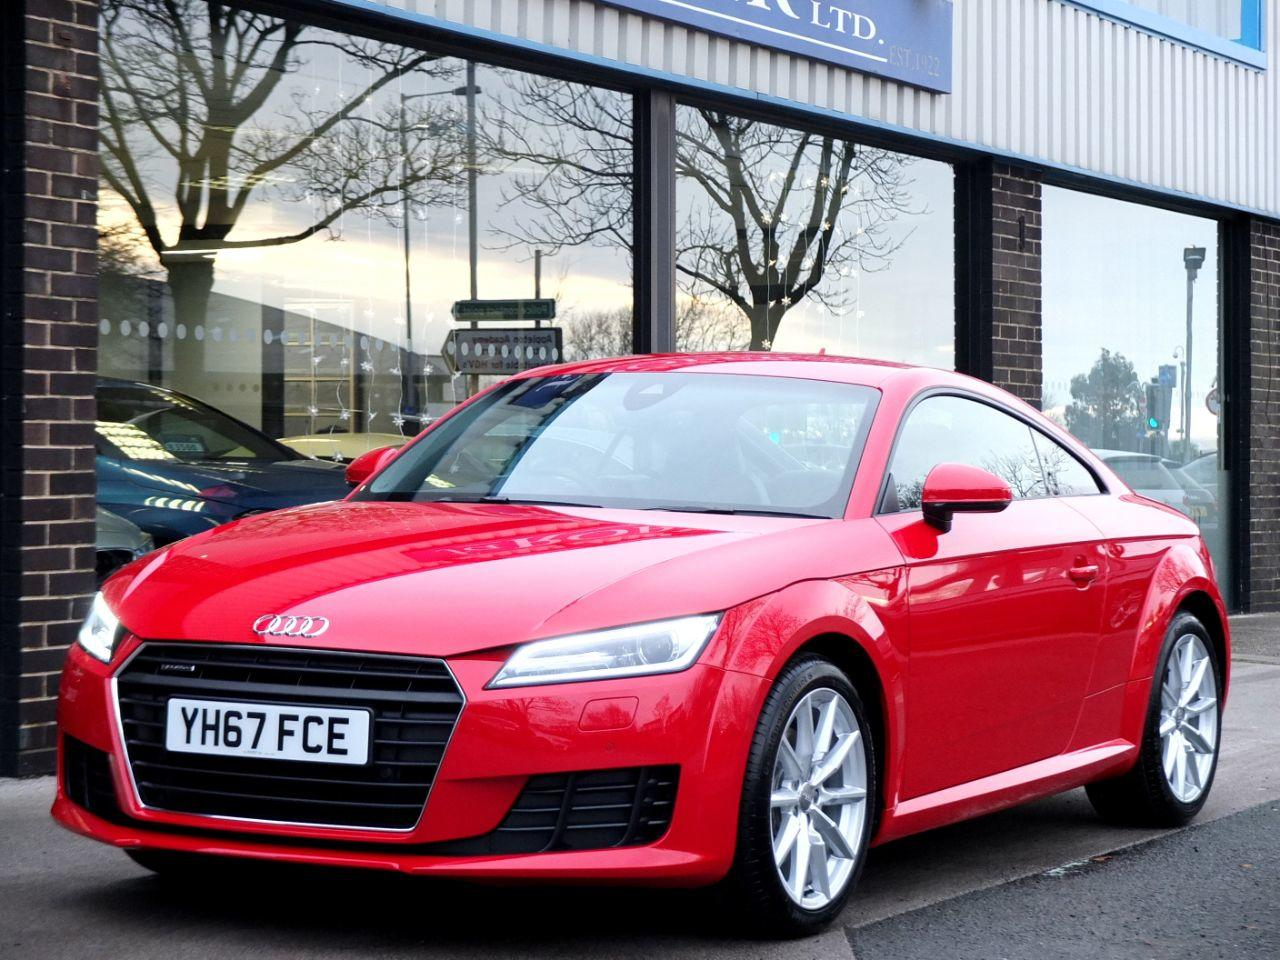 Audi TT Coupe 2.0T FSI quattro Sport S tronic 230ps Coupe Petrol Tango Red Metallic